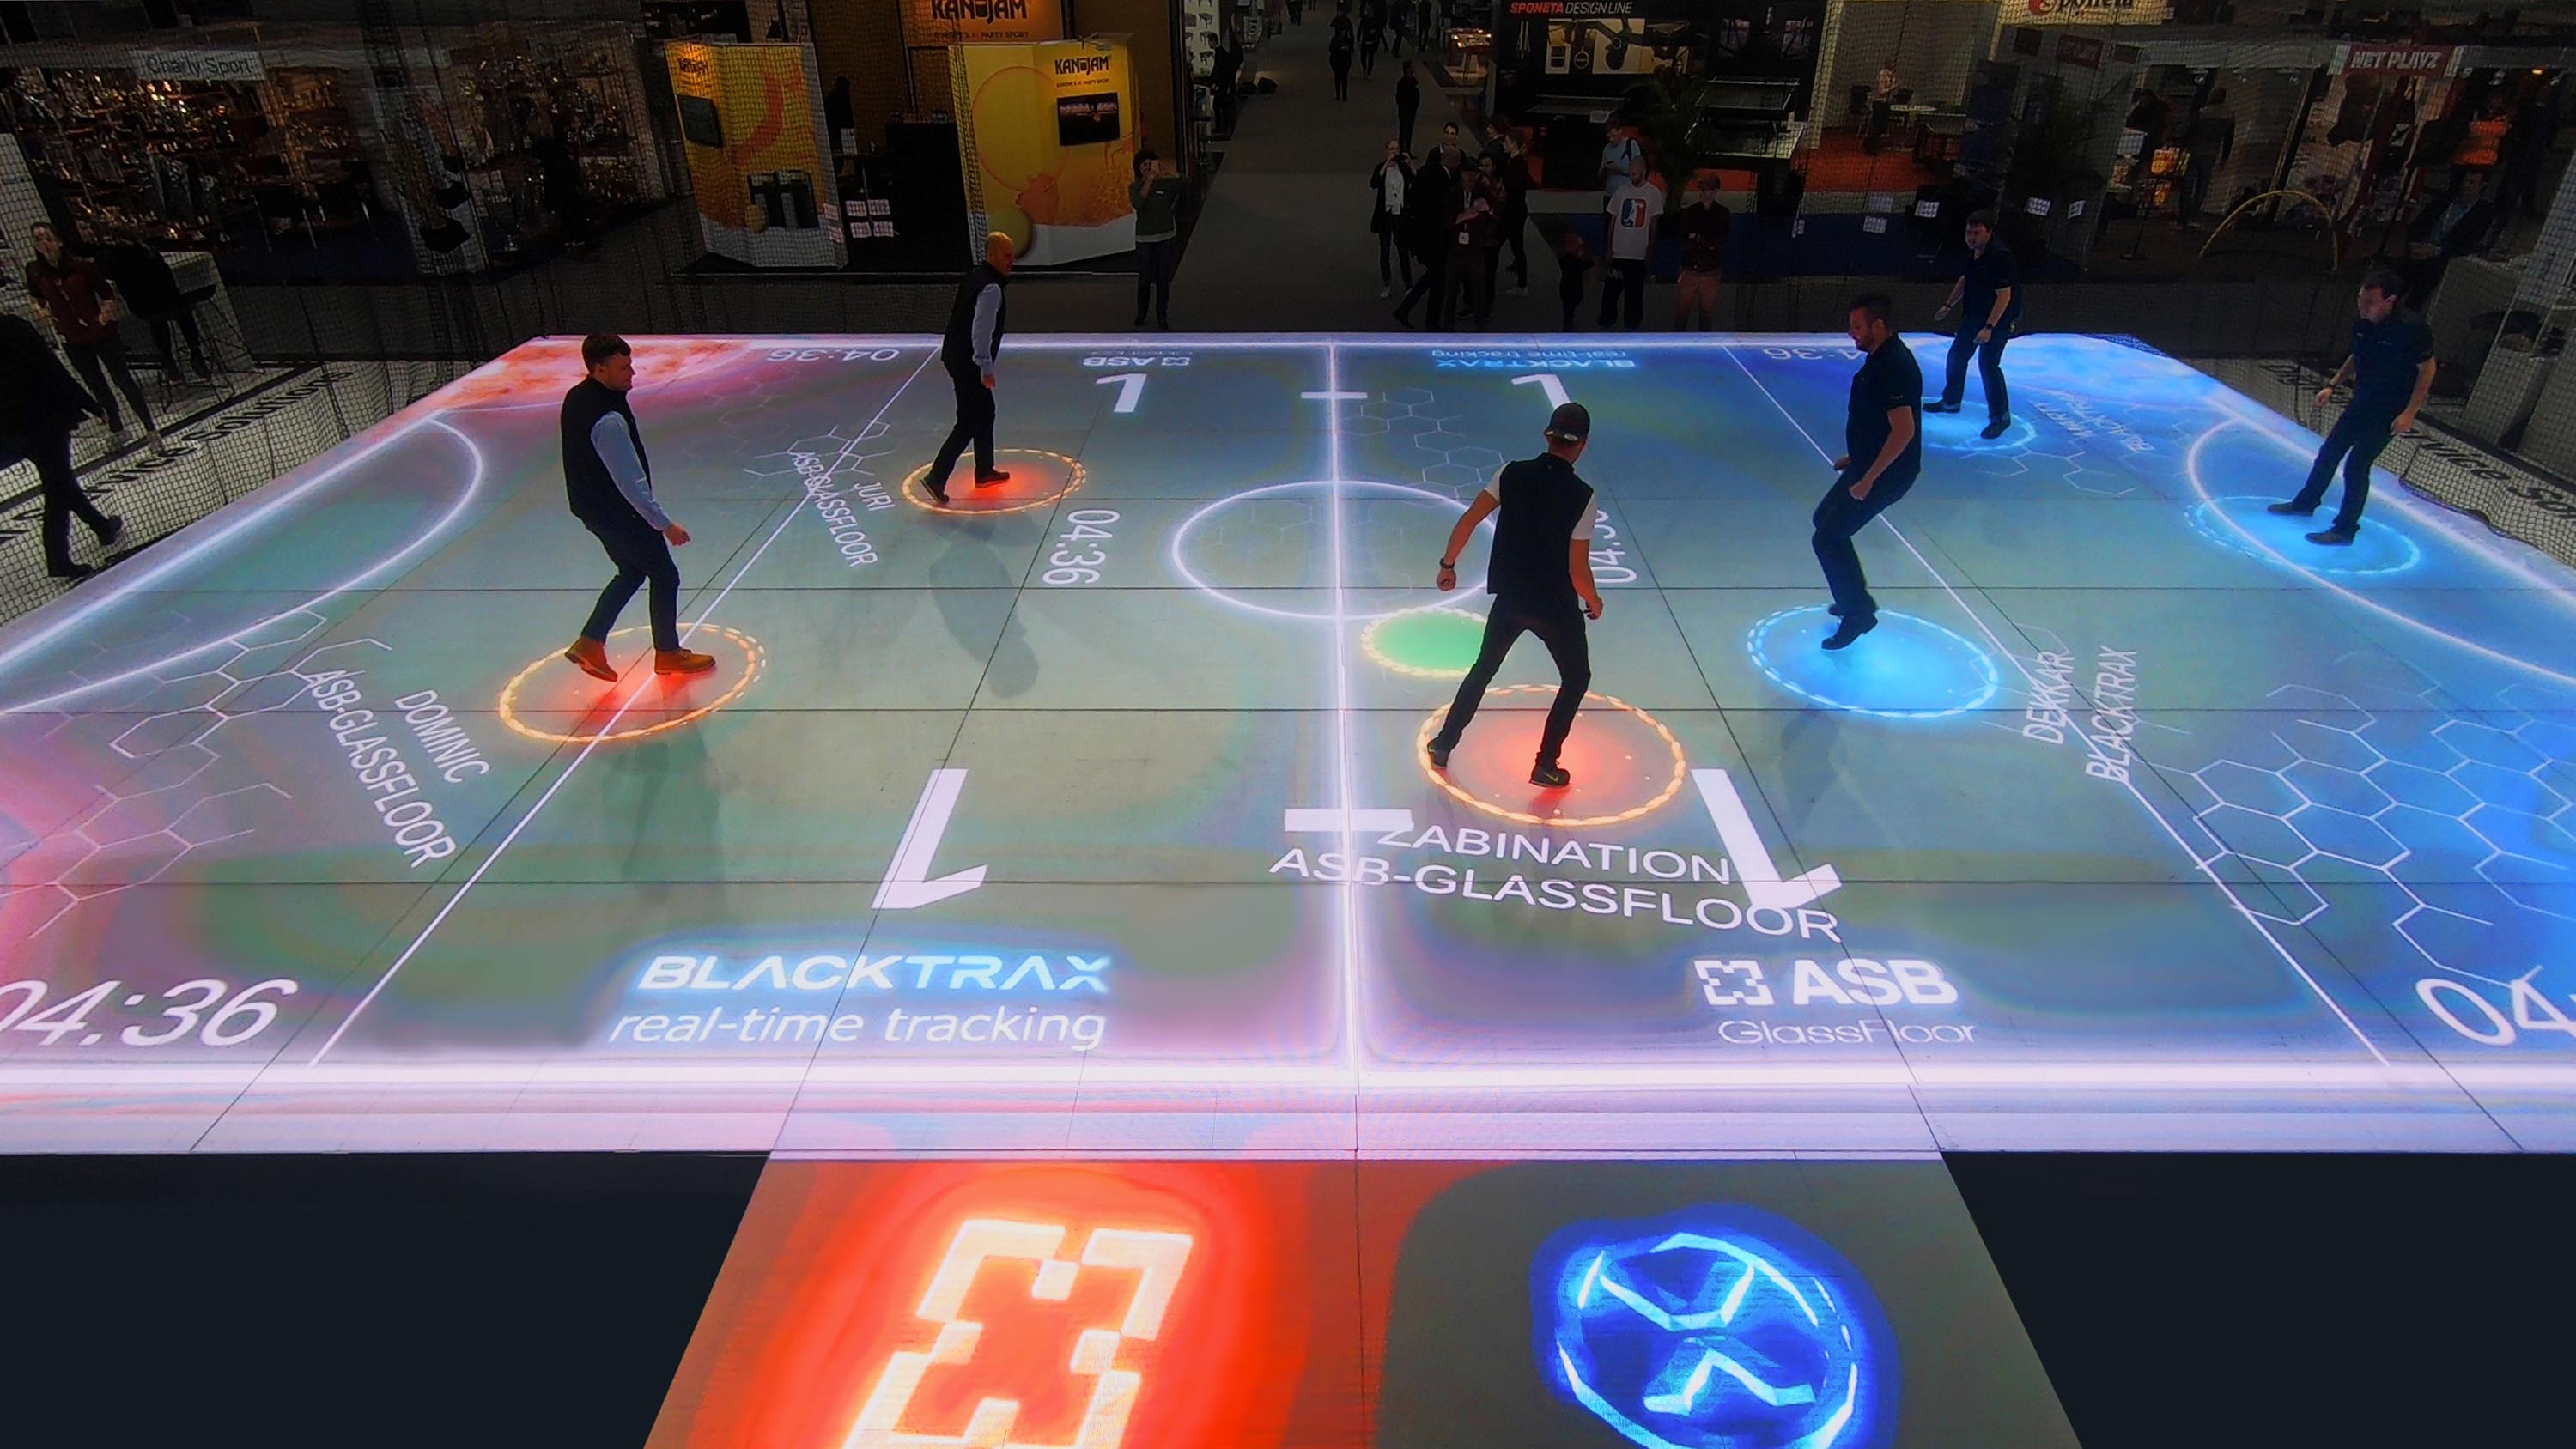 ASB glass sports floor